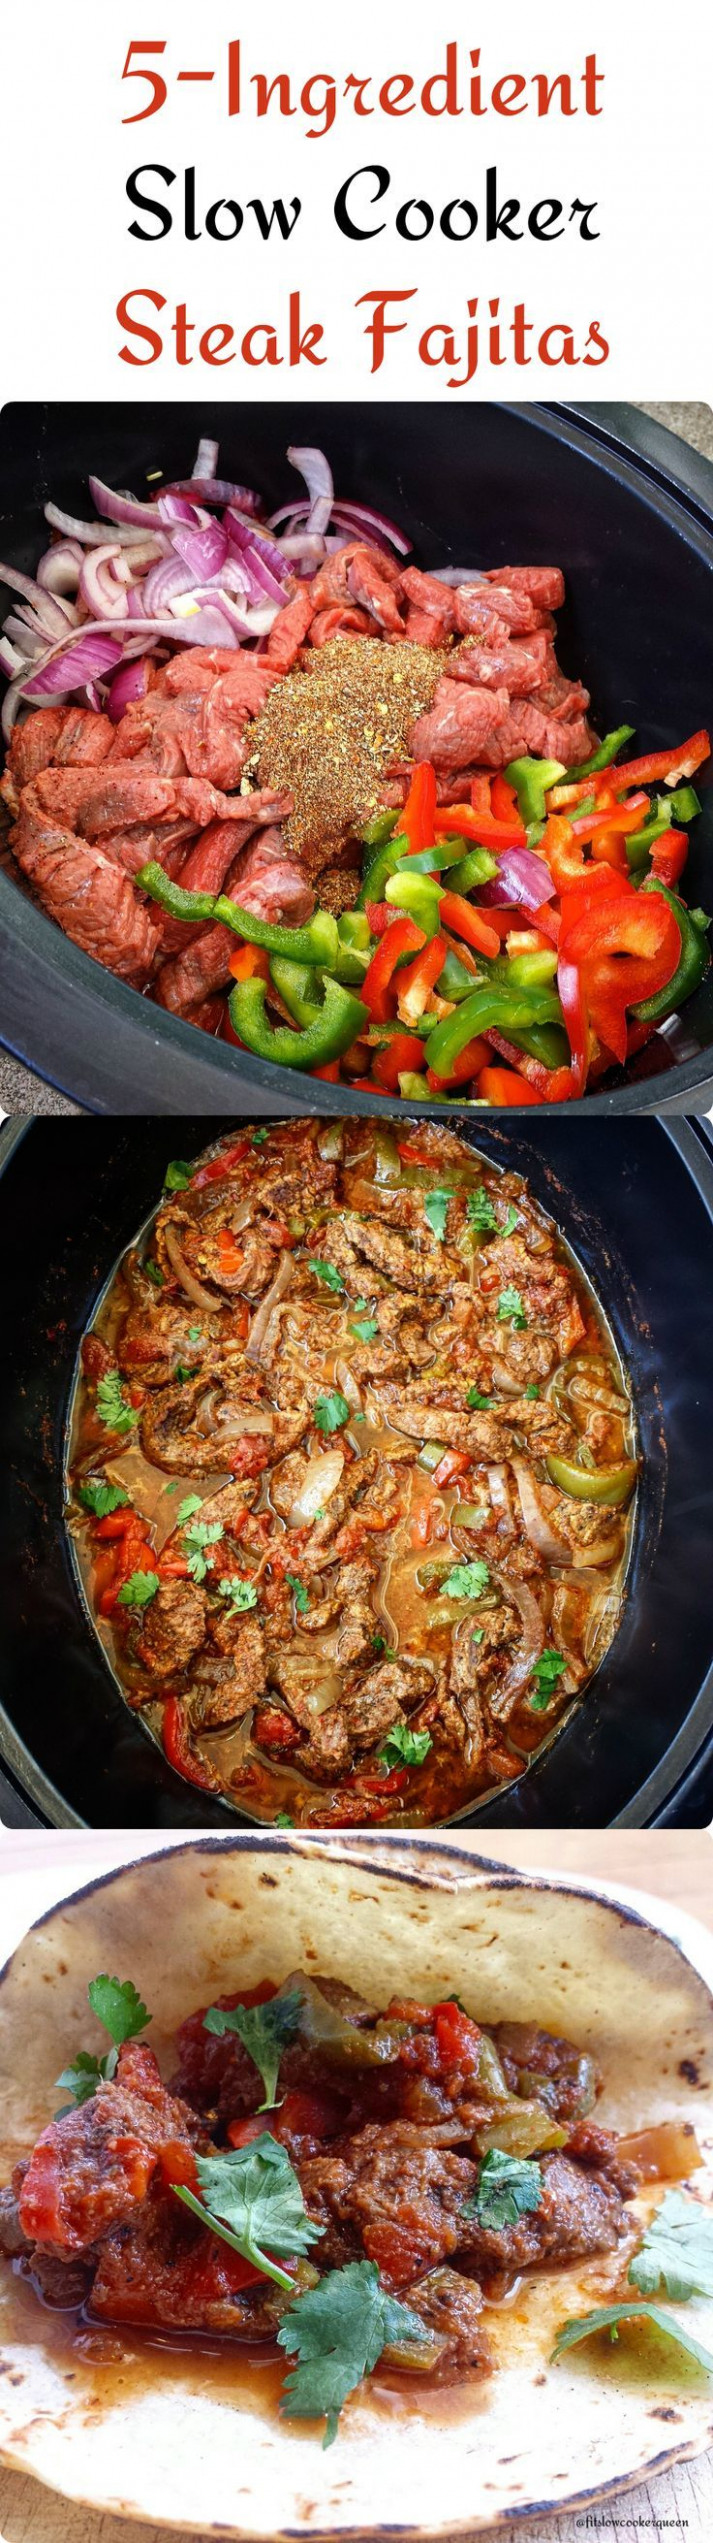 5-Ingredient Slow Cooker/Instant Pot Steak Fajitas (Low ..